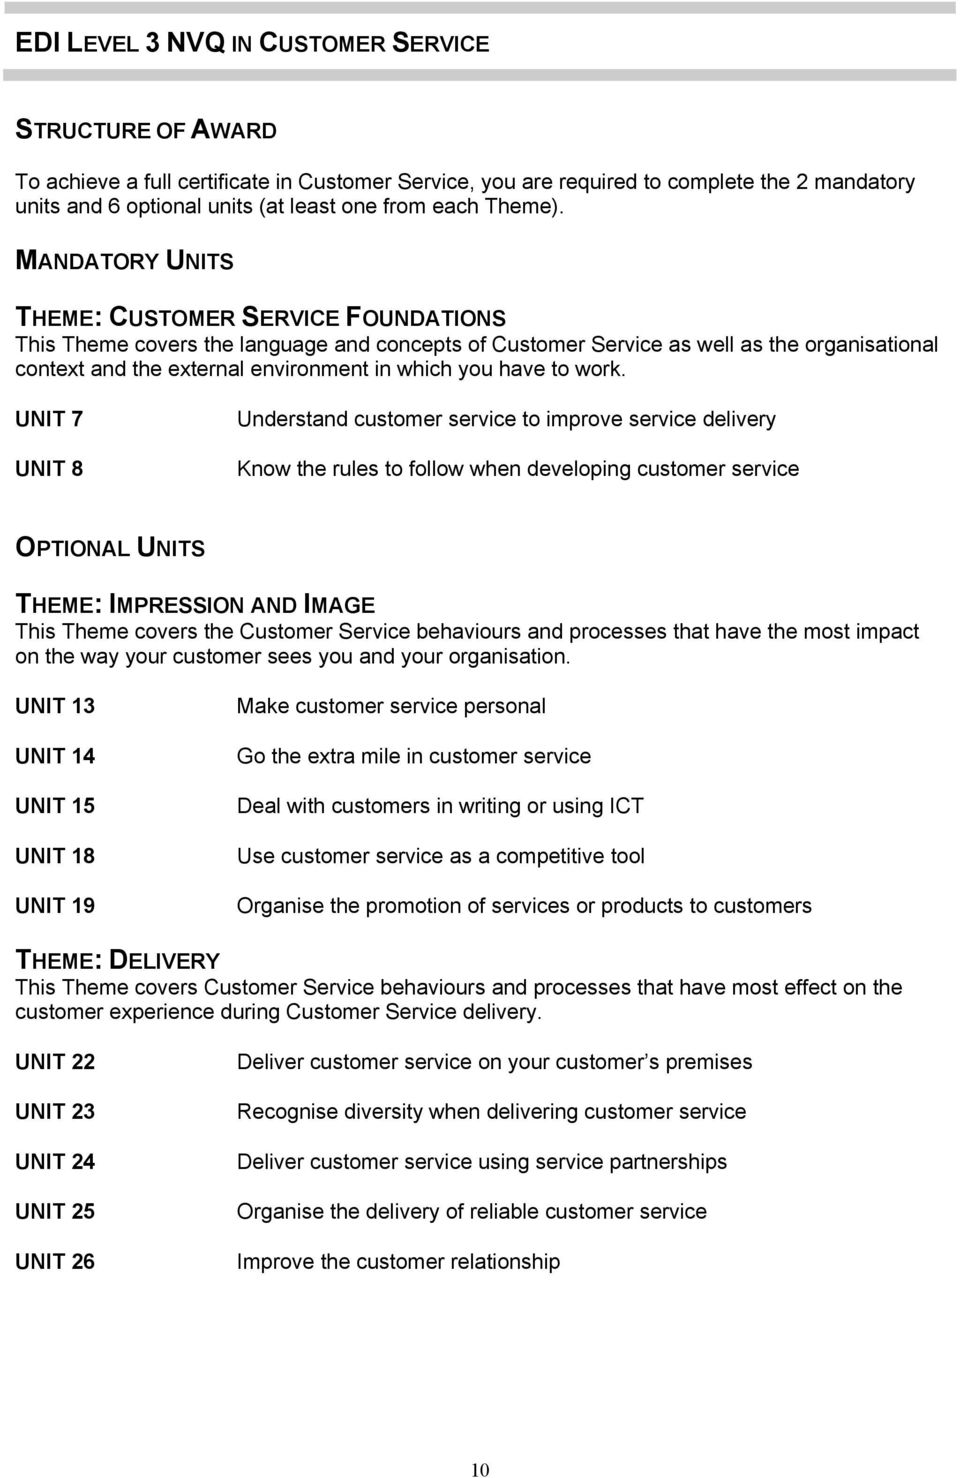 MANDATORY UNITS THEME: CUSTOMER SERVICE FOUNDATIONS This Theme covers the language and concepts of Customer Service as well as the organisational context and the external environment in which you